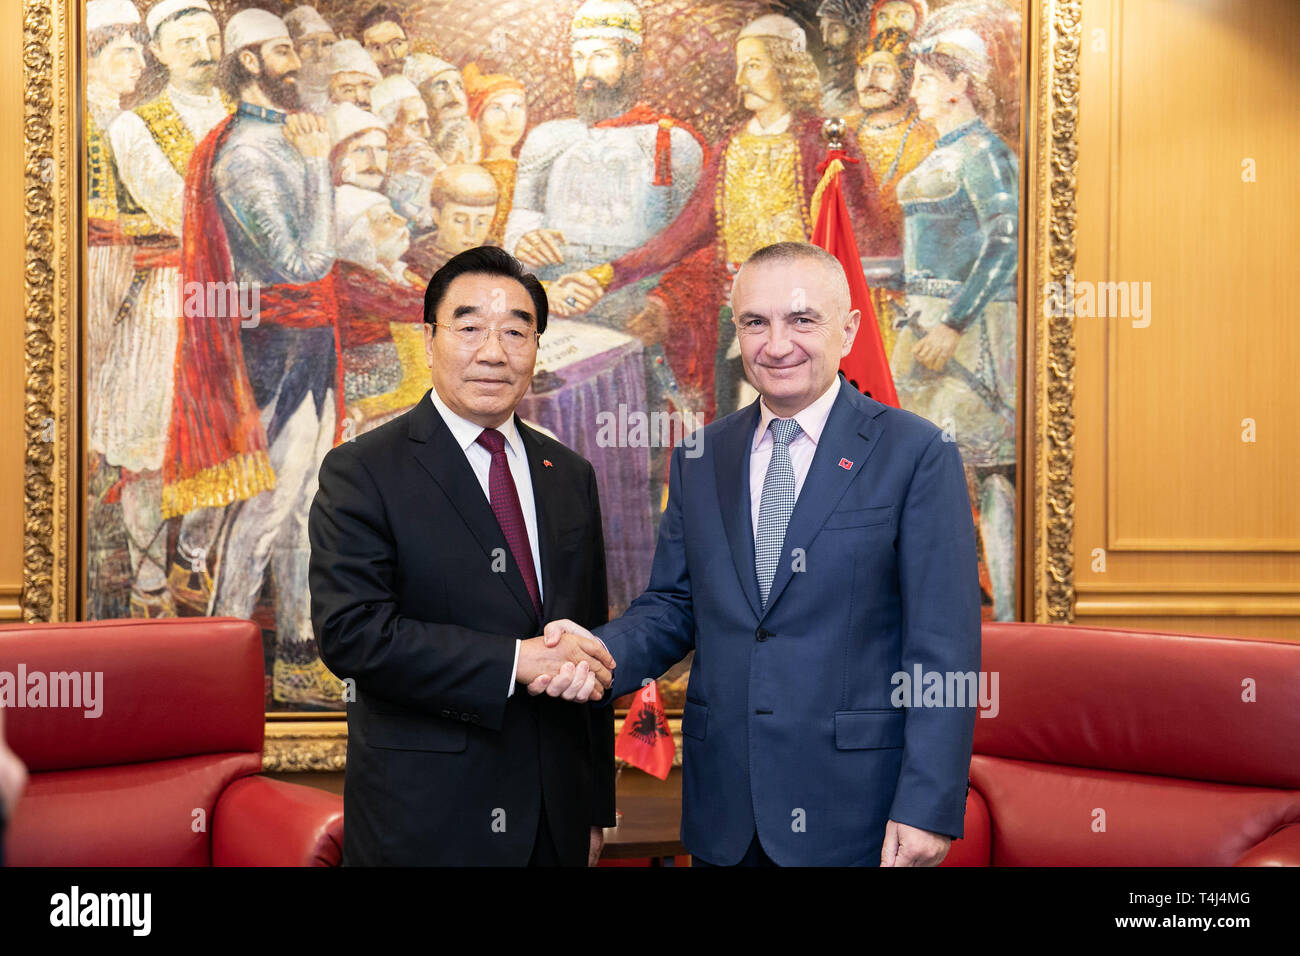 Tirana, Albania. 16th Apr, 2019. Albanian President Ilir Meta (R) meets with Zhang Qingli, vice chairman of the Chinese People's Political Consultative Conference (CPPCC) National Committee, who heads a visiting delegation of the CPPCC National Committee, in Tirana, Albania, April 16, 2019. Credit: Chinese Embassy in Albania/Xinhua/Alamy Live News - Stock Image